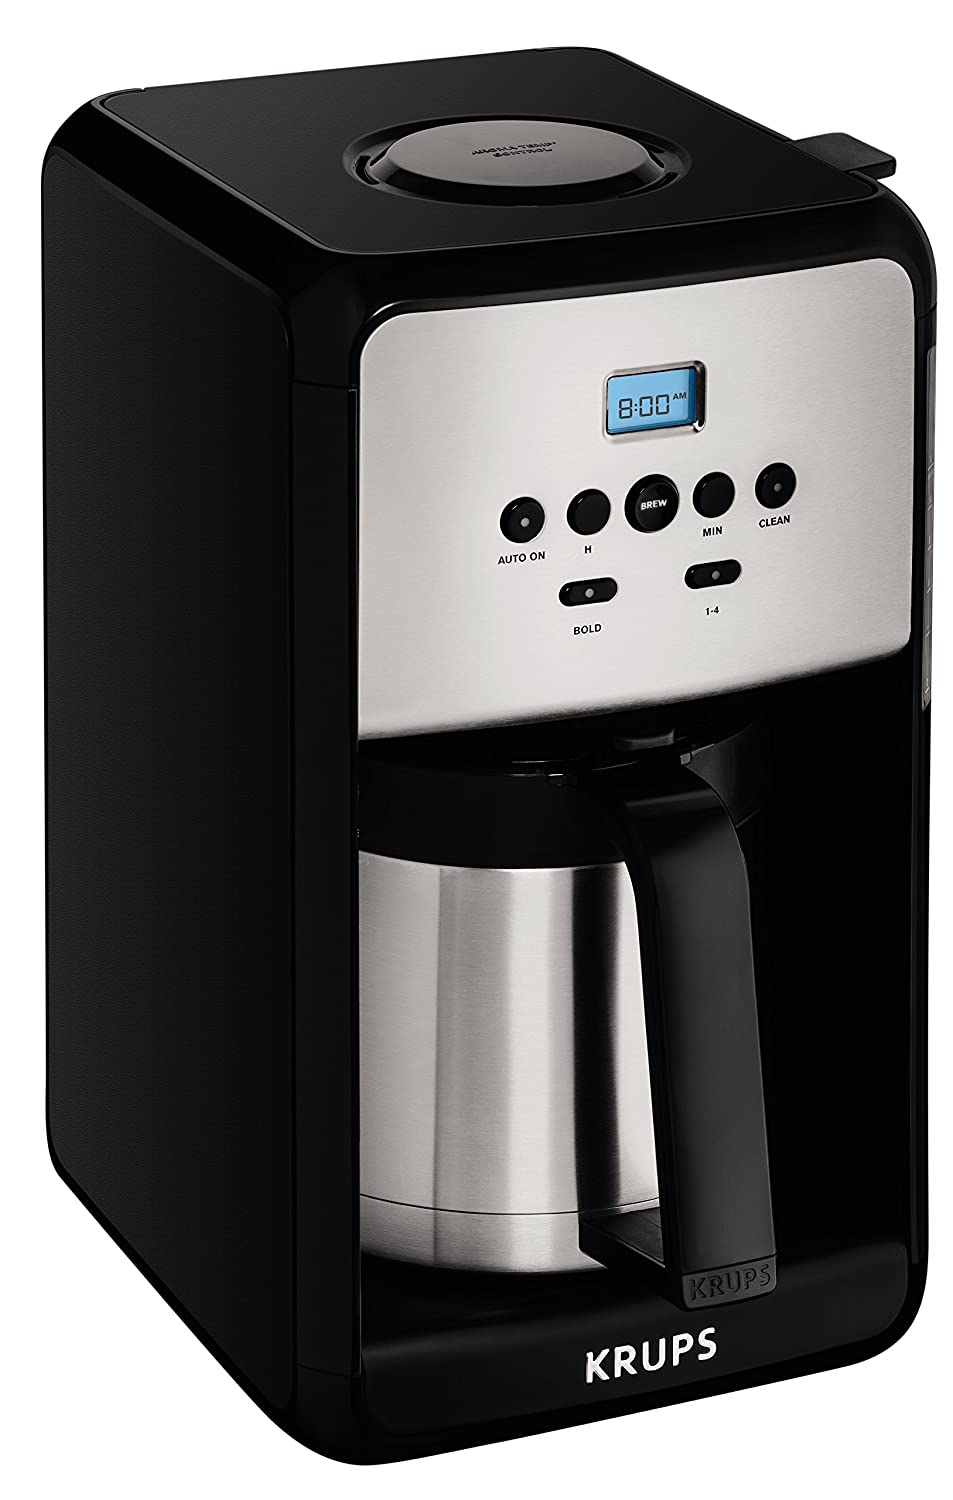 KRUPS ET351 Coffee Maker, Coffee Programmable Maker, Thermal Carafe, 12 Cup, Black